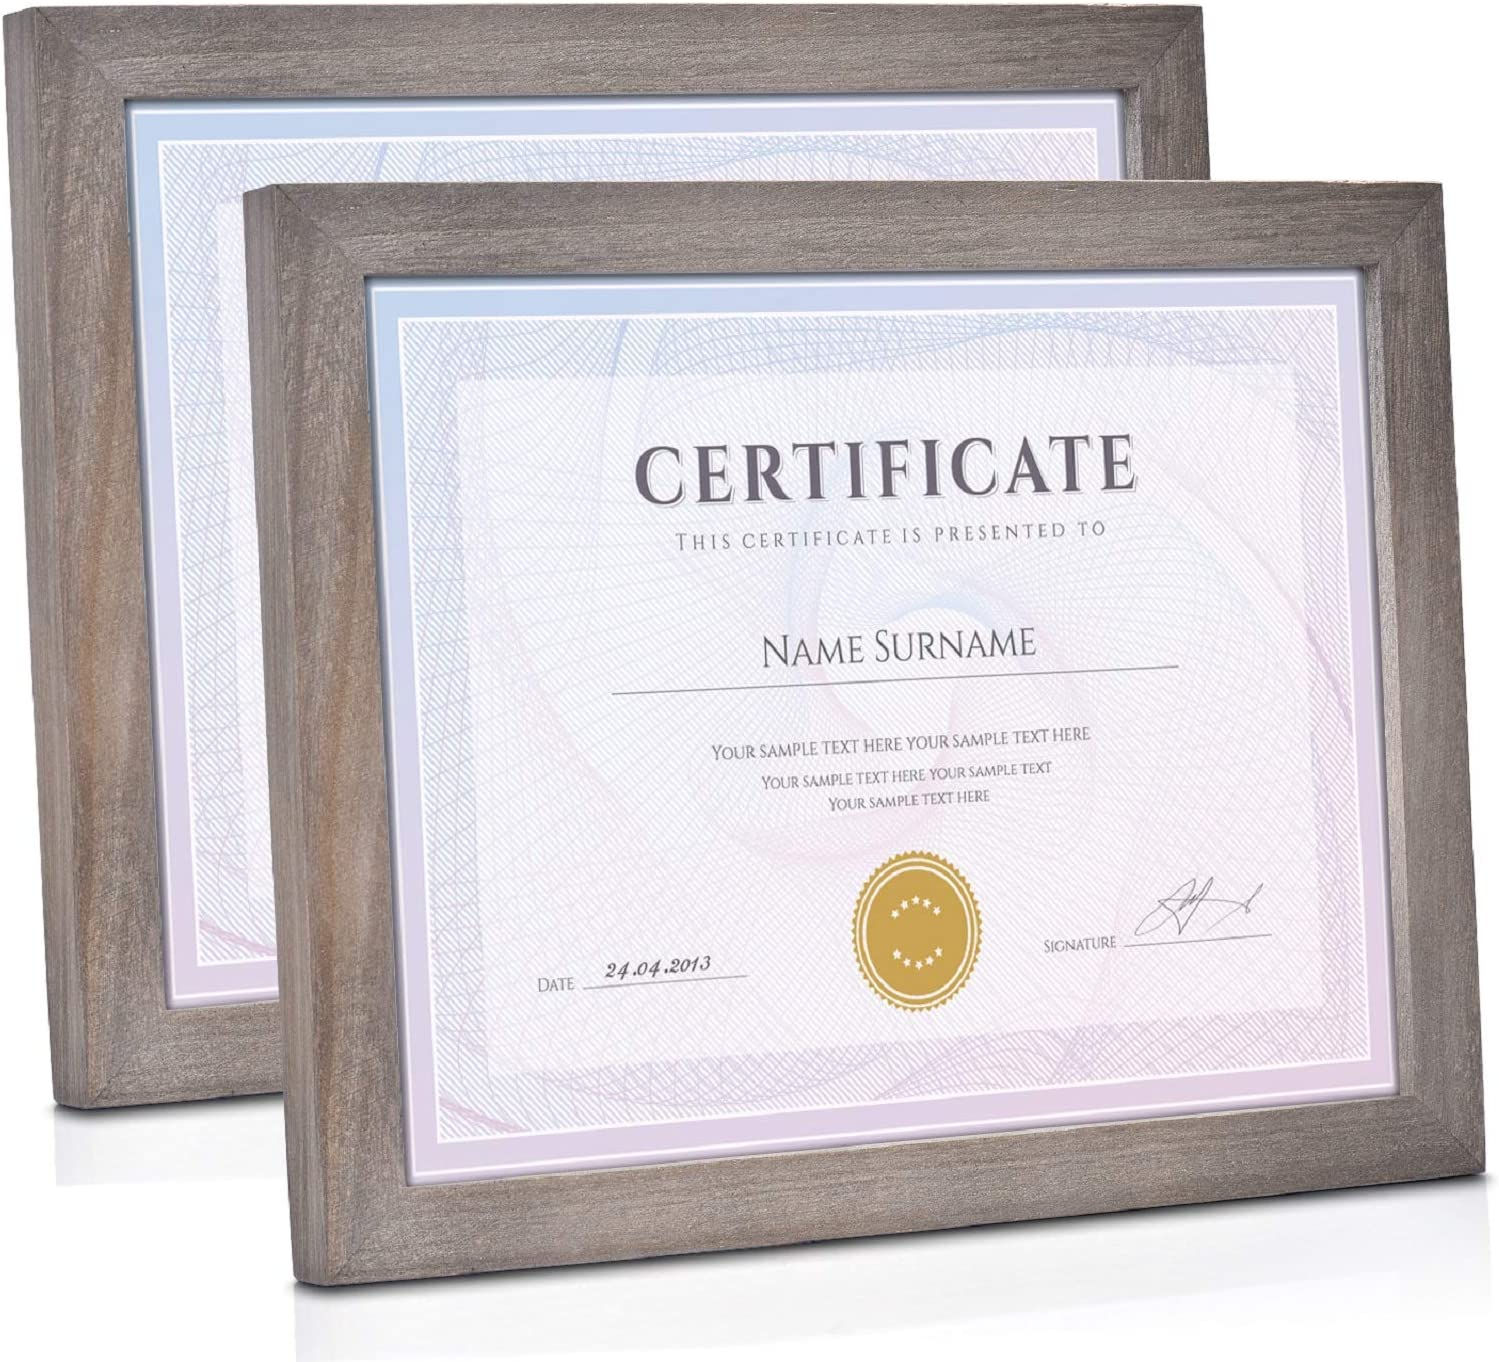 Emfogo Jacksonville Mall Picture Frames 8.5x11 with Stand Certificate Rusti Low price